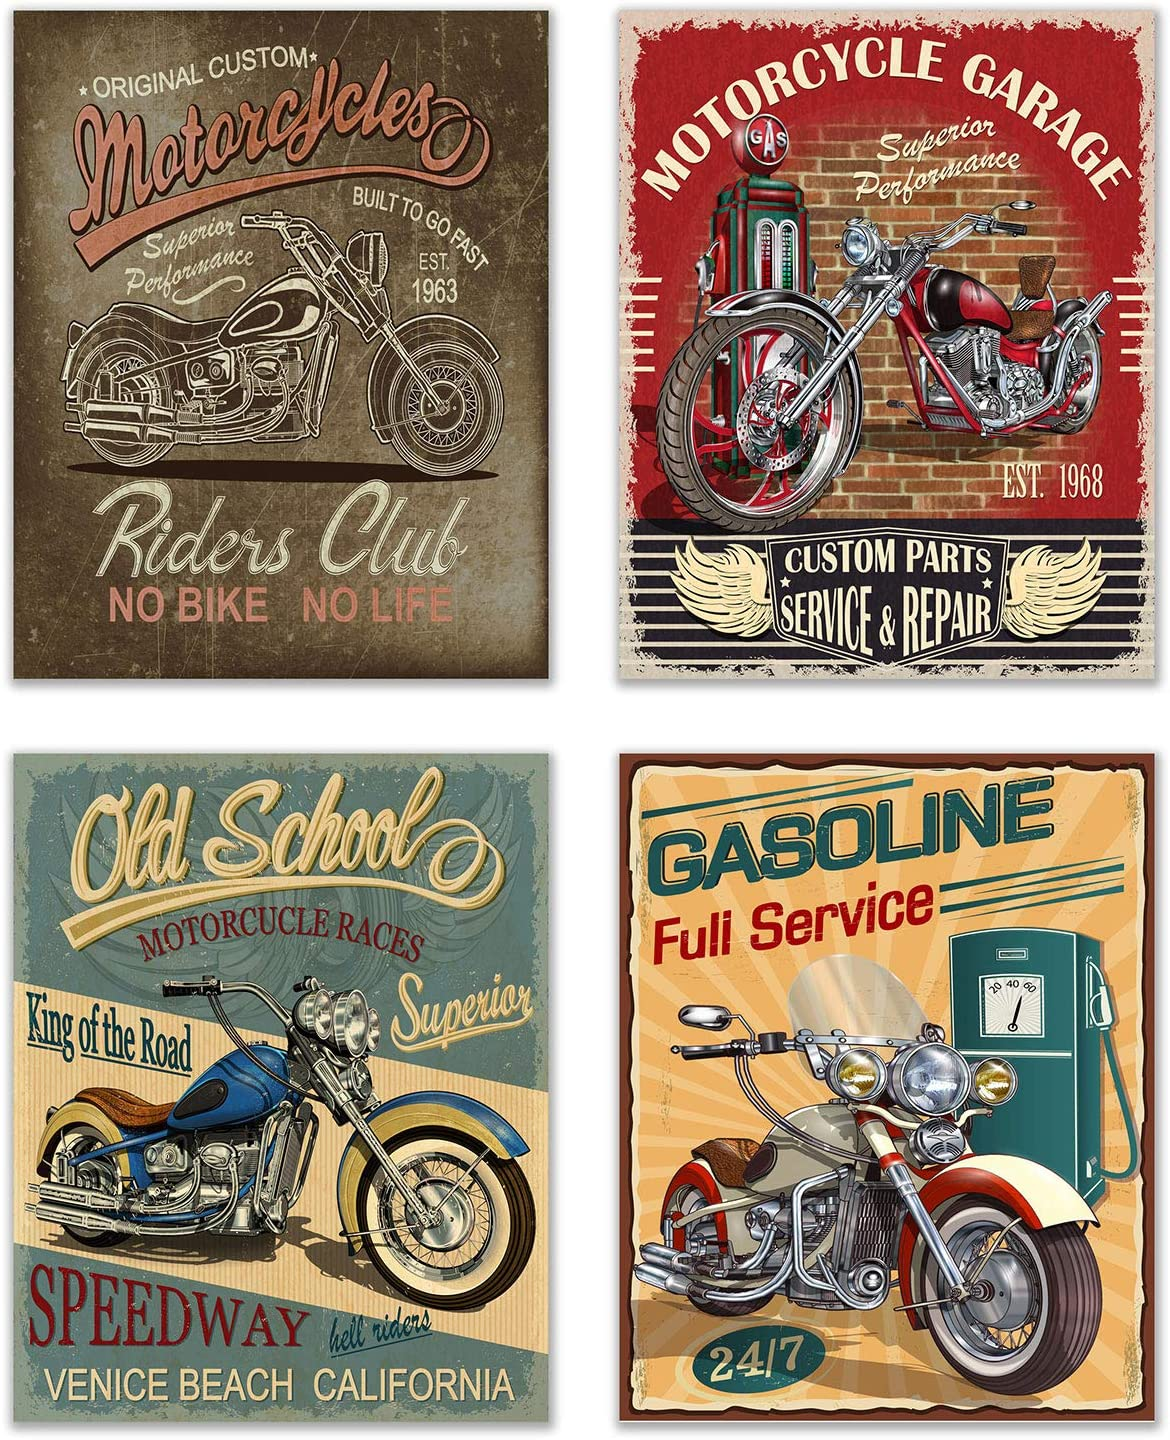 """Infinity Creations Vintage Motorcyles Garage Photo Prints. Set of 4 (8""""x10"""" unframed) Photo Poster Prints Wall Decor"""